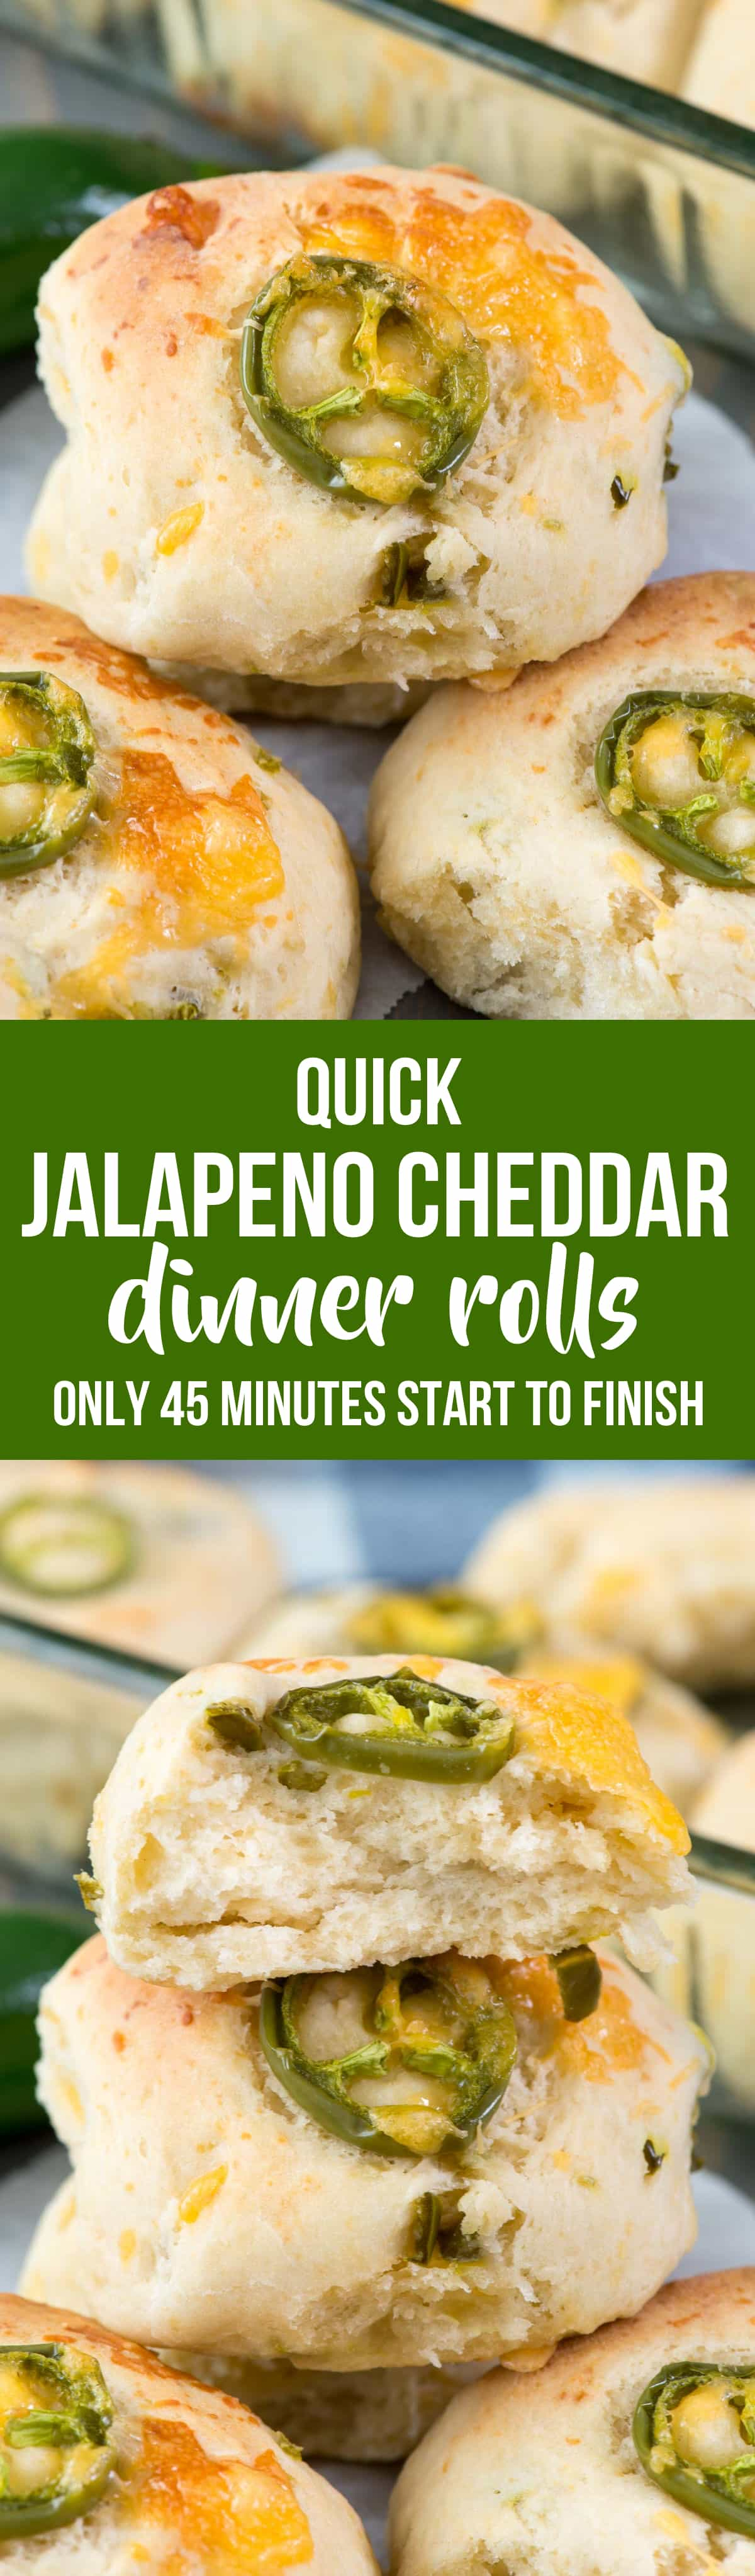 Quick Jalapeño Cheddar Rolls - this easy dinner roll recipe is made in under 45 minutes! The rolls are full of jalapeños and cheddar cheese and are the perfect side dish. Homemade rolls are always better!